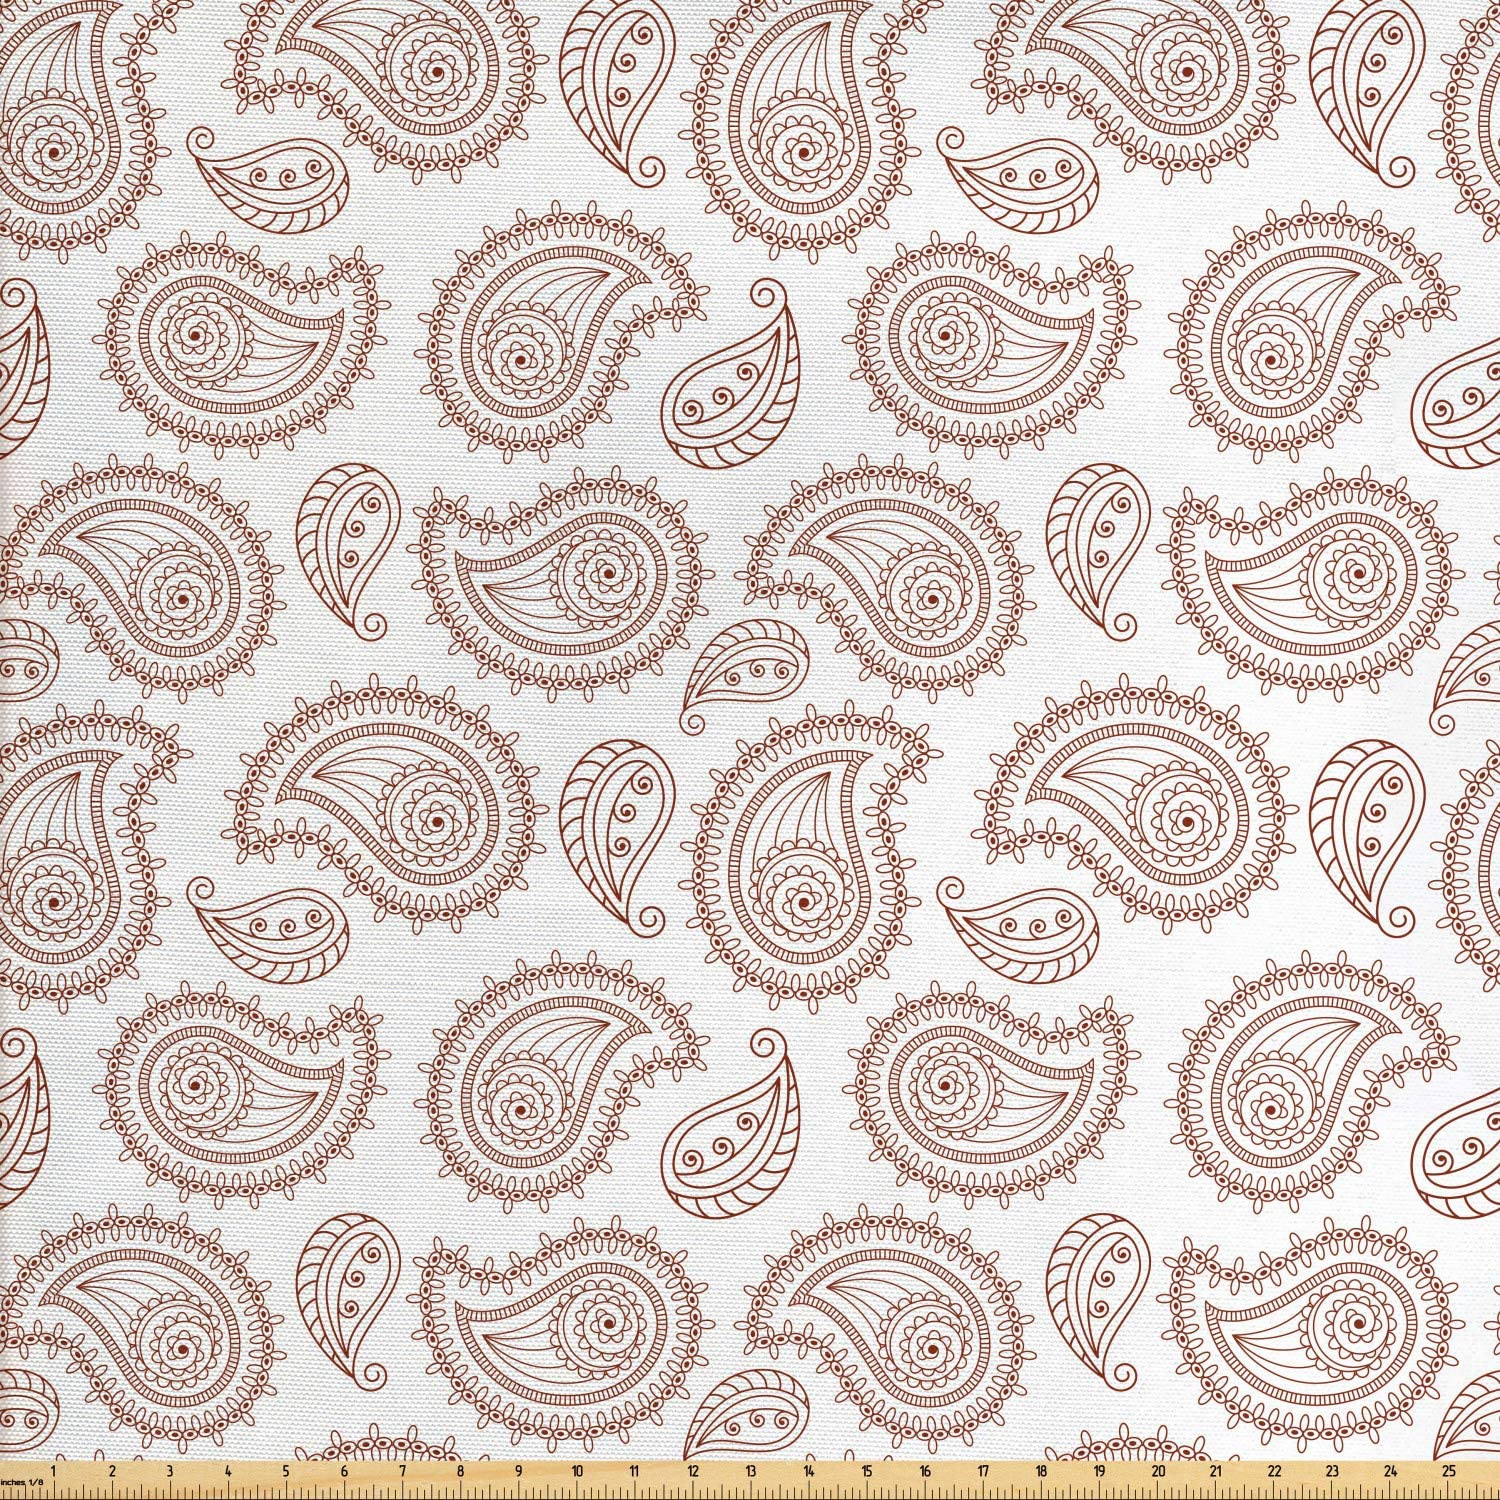 Ambesonne Brown Paisley Fabric by The Yard, Continuous Almond Inspired Oriental Motifs Traditional Fashion Print, Decorative Fabric for Upholstery and Home Accents, 1 Yard, Redwood and White